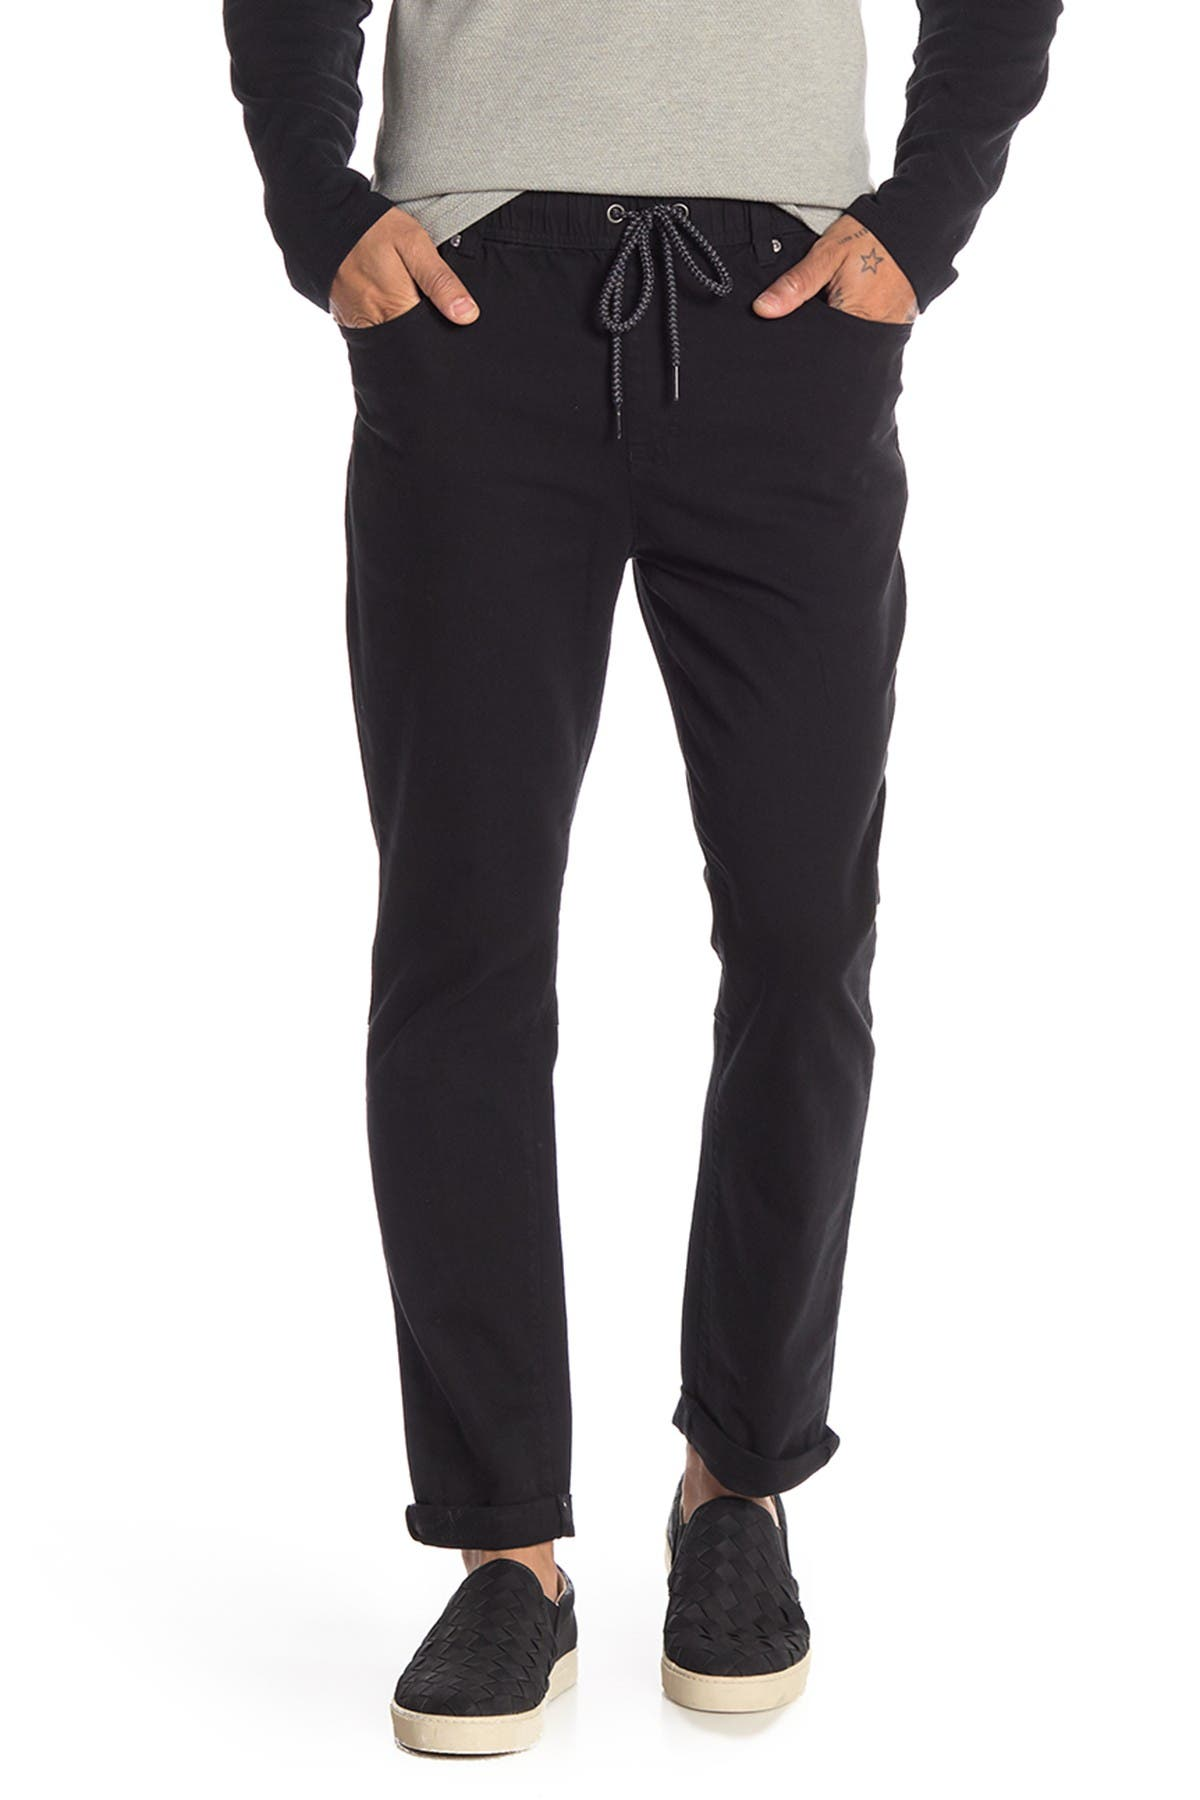 Image of Civil Society Edwin Elasticized Pants